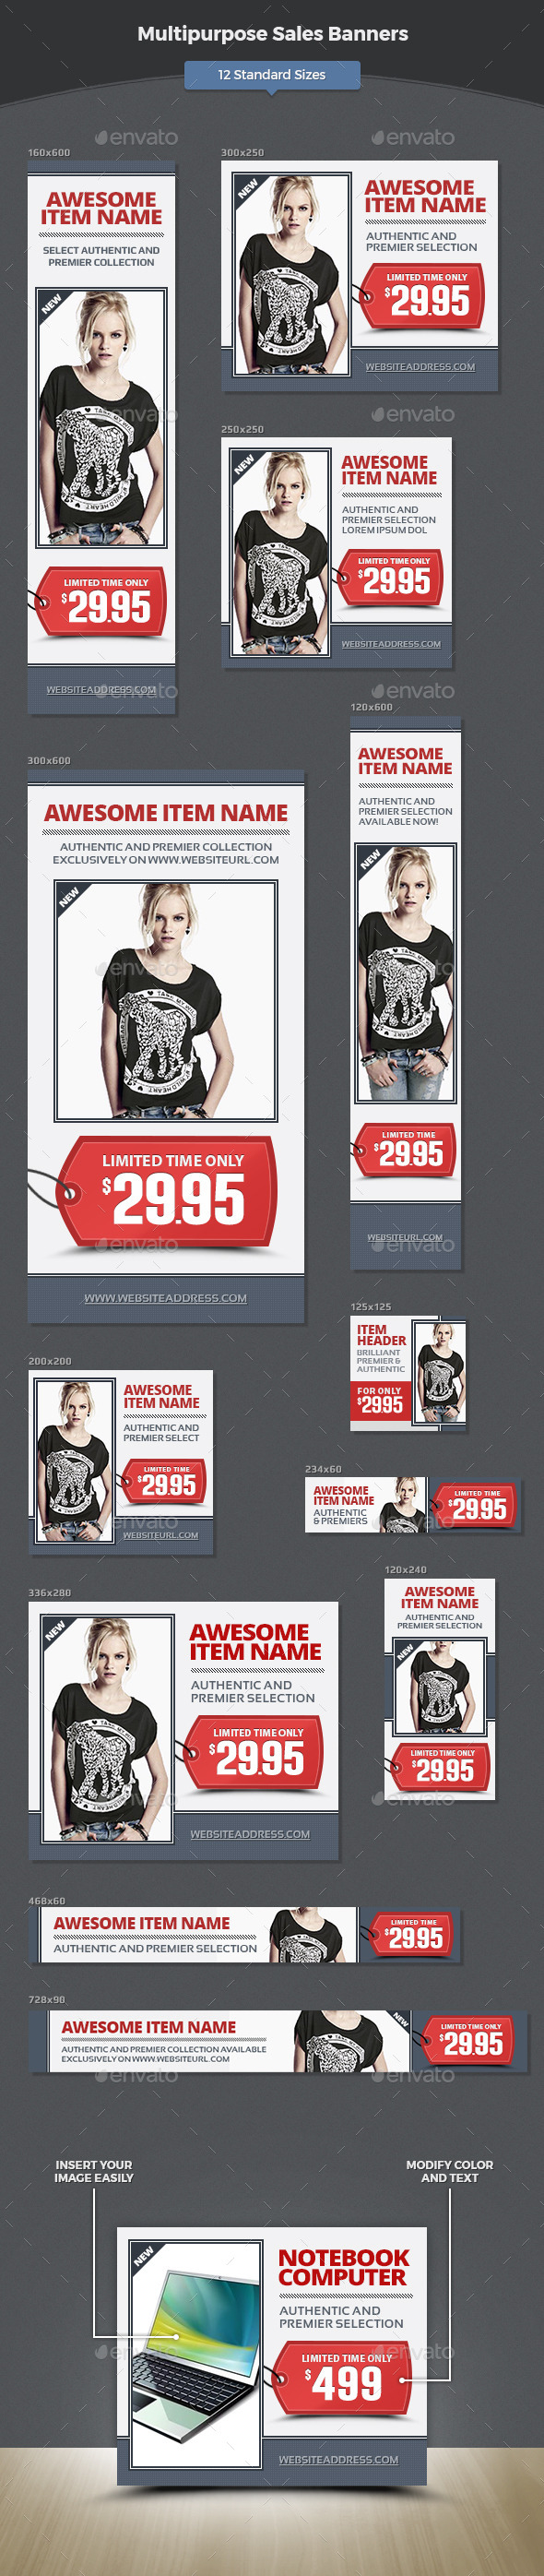 GraphicRiver Multipurpose Sales Banners 11930001